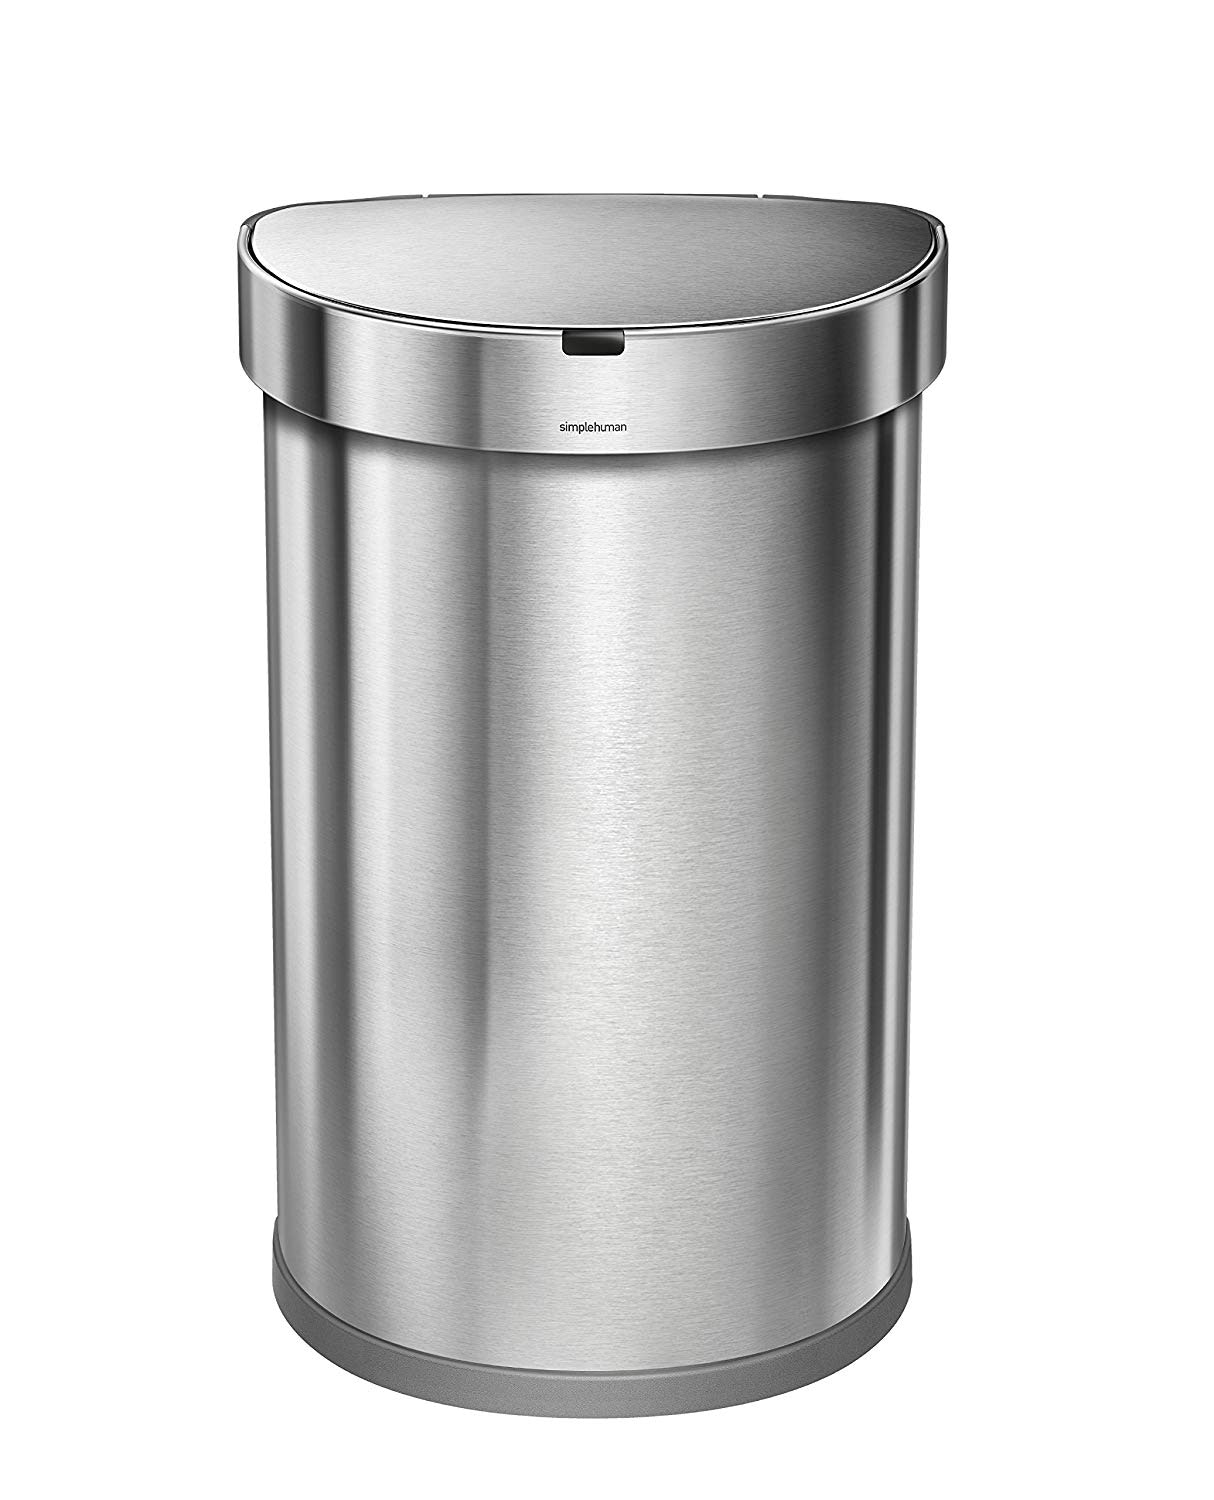 simplehuman 45 Liter / 12 Gallon Stainless Steel Semi-Round Sensor Can